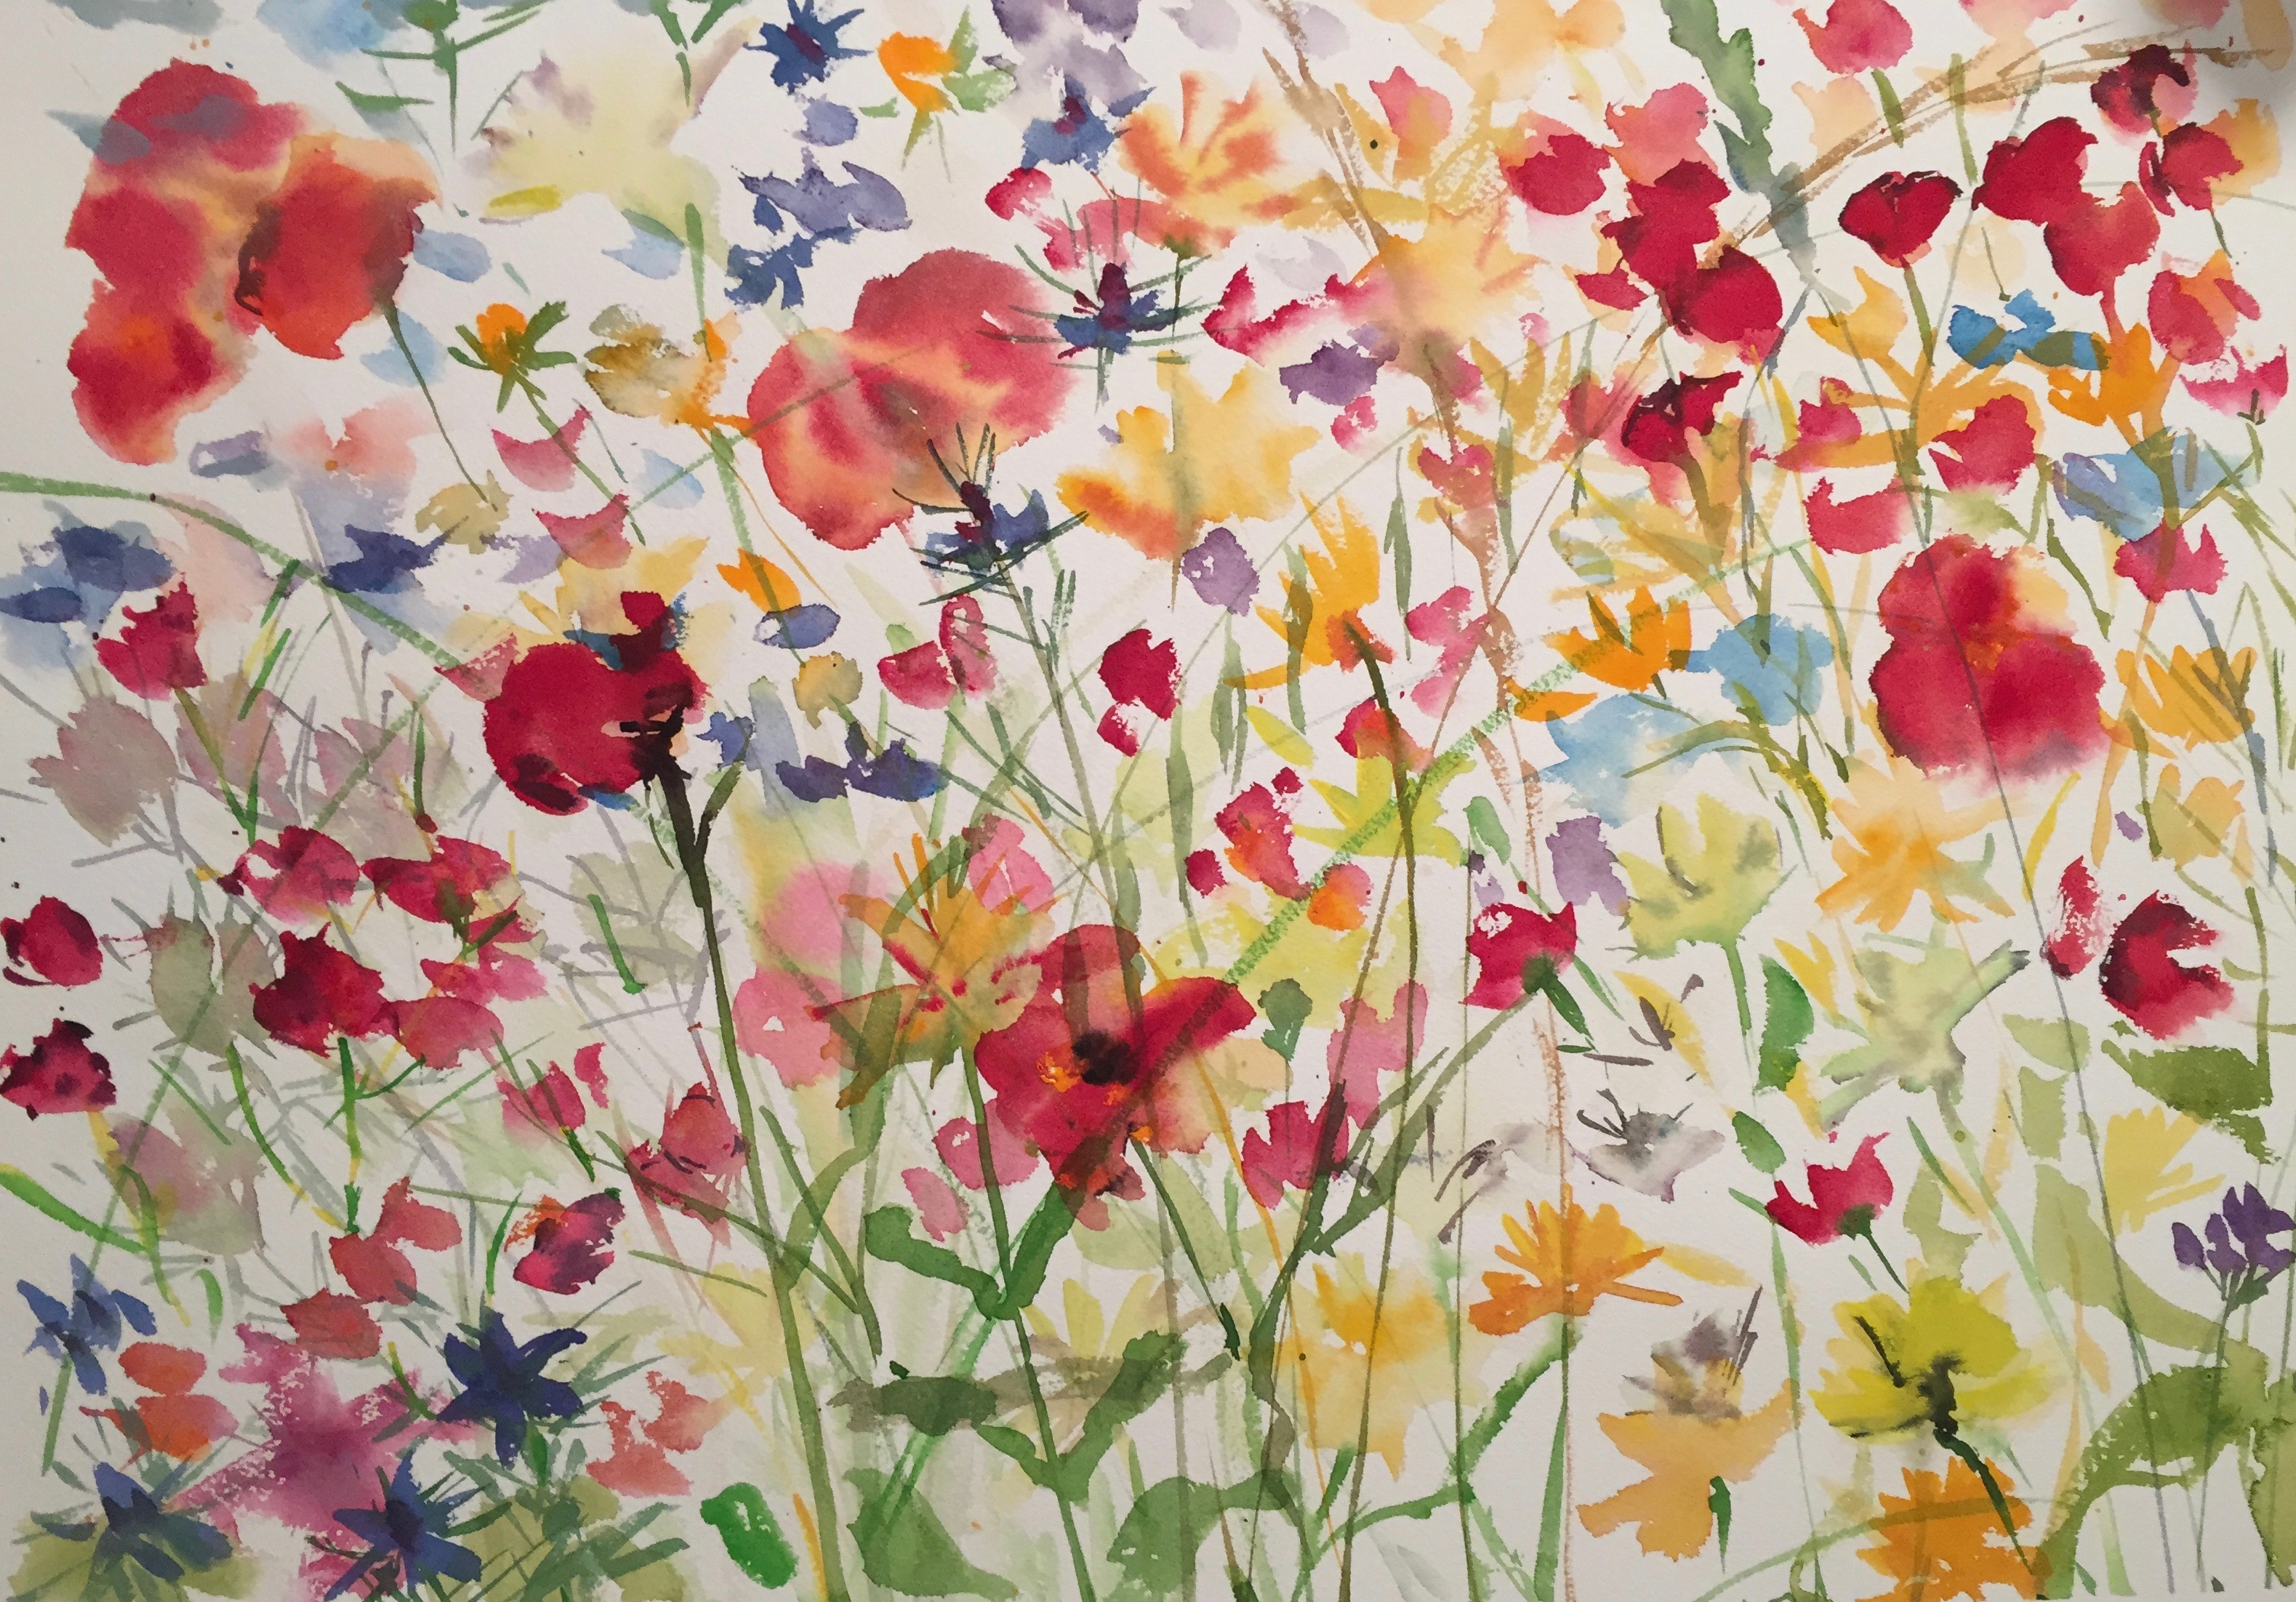 In My Garden Painting The Wildflower Meadow Chatting To My Friend. Alison About  Paint Provence With Tess